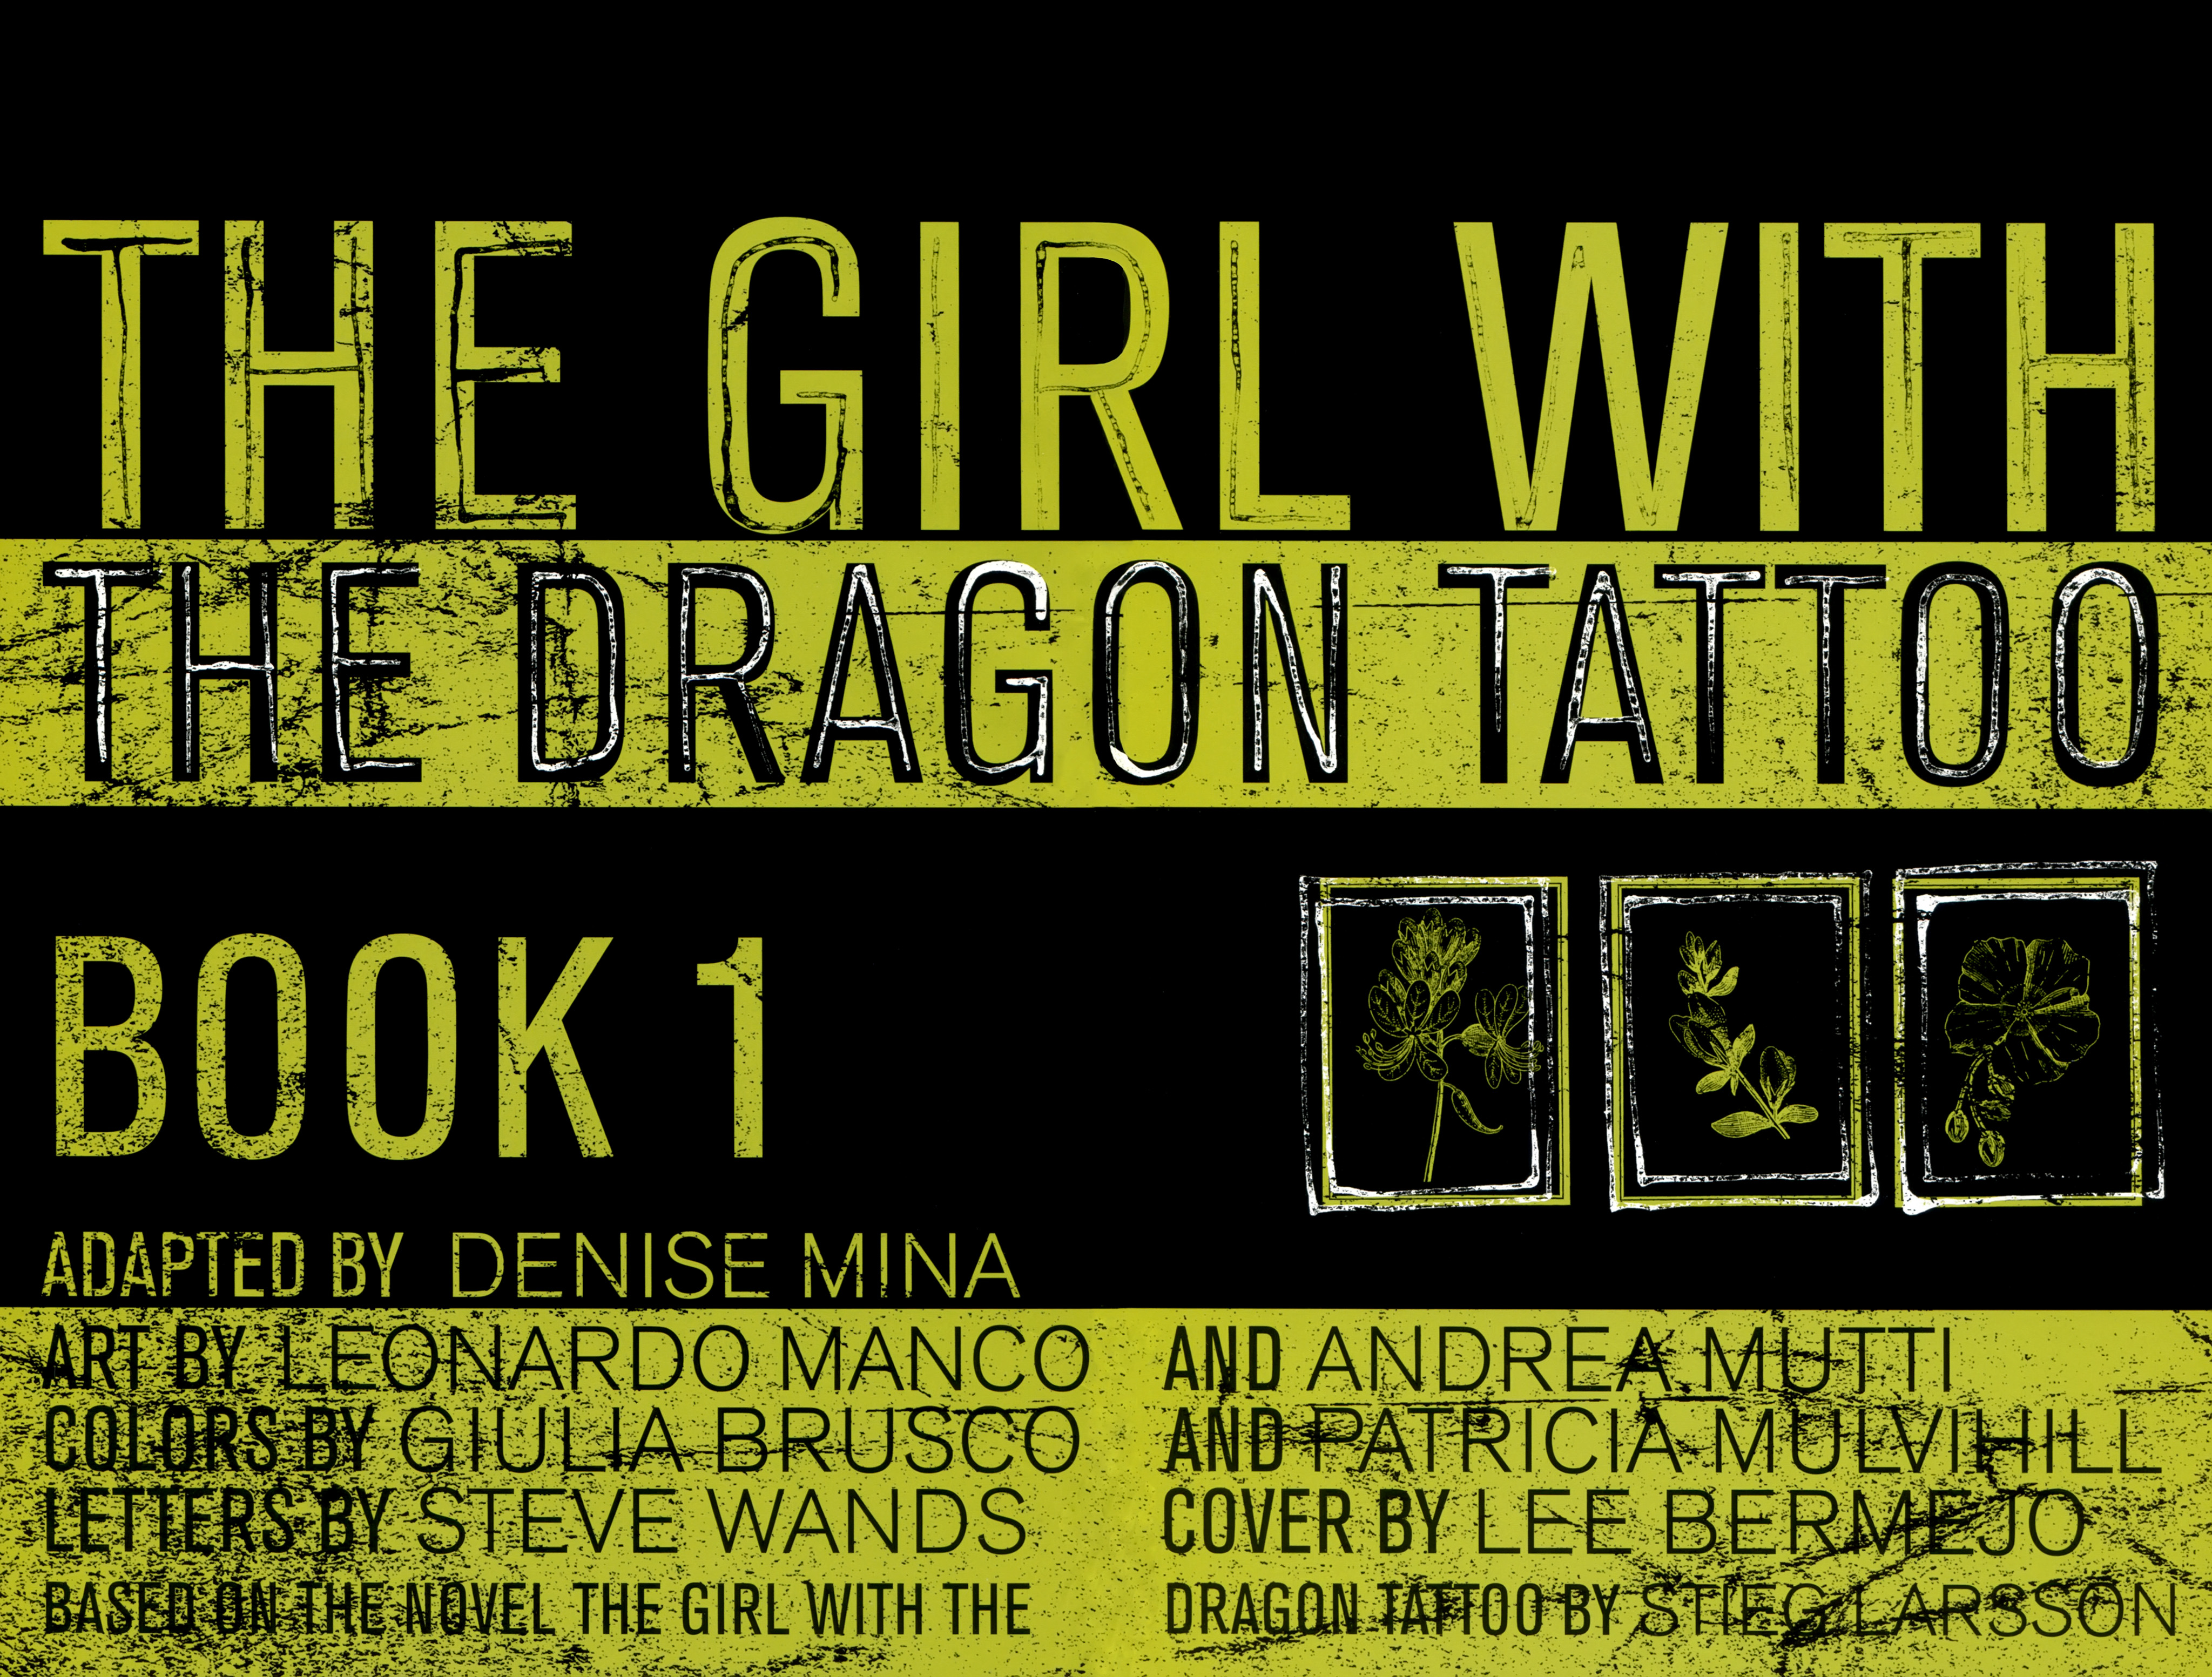 Read online The Girl With the Dragon Tattoo comic -  Issue # TPB 1 - 6